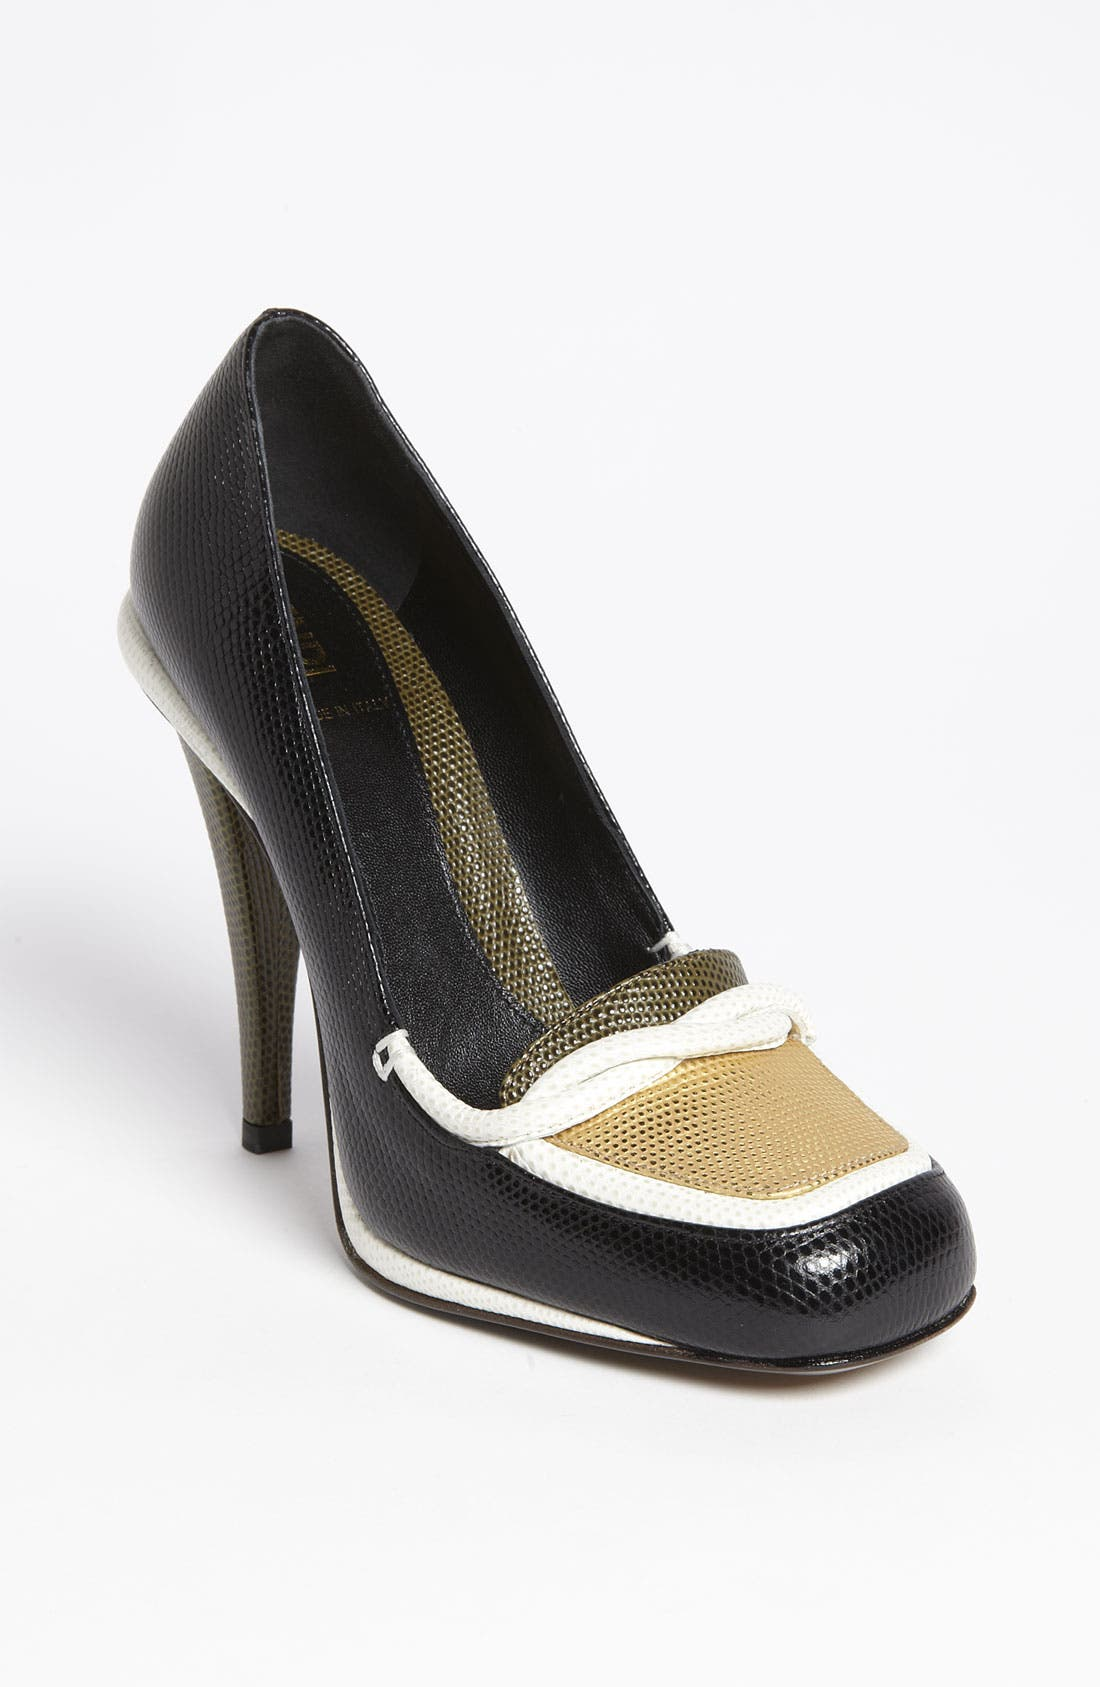 Alternate Image 1 Selected - Fendi 'Flapper' Pump